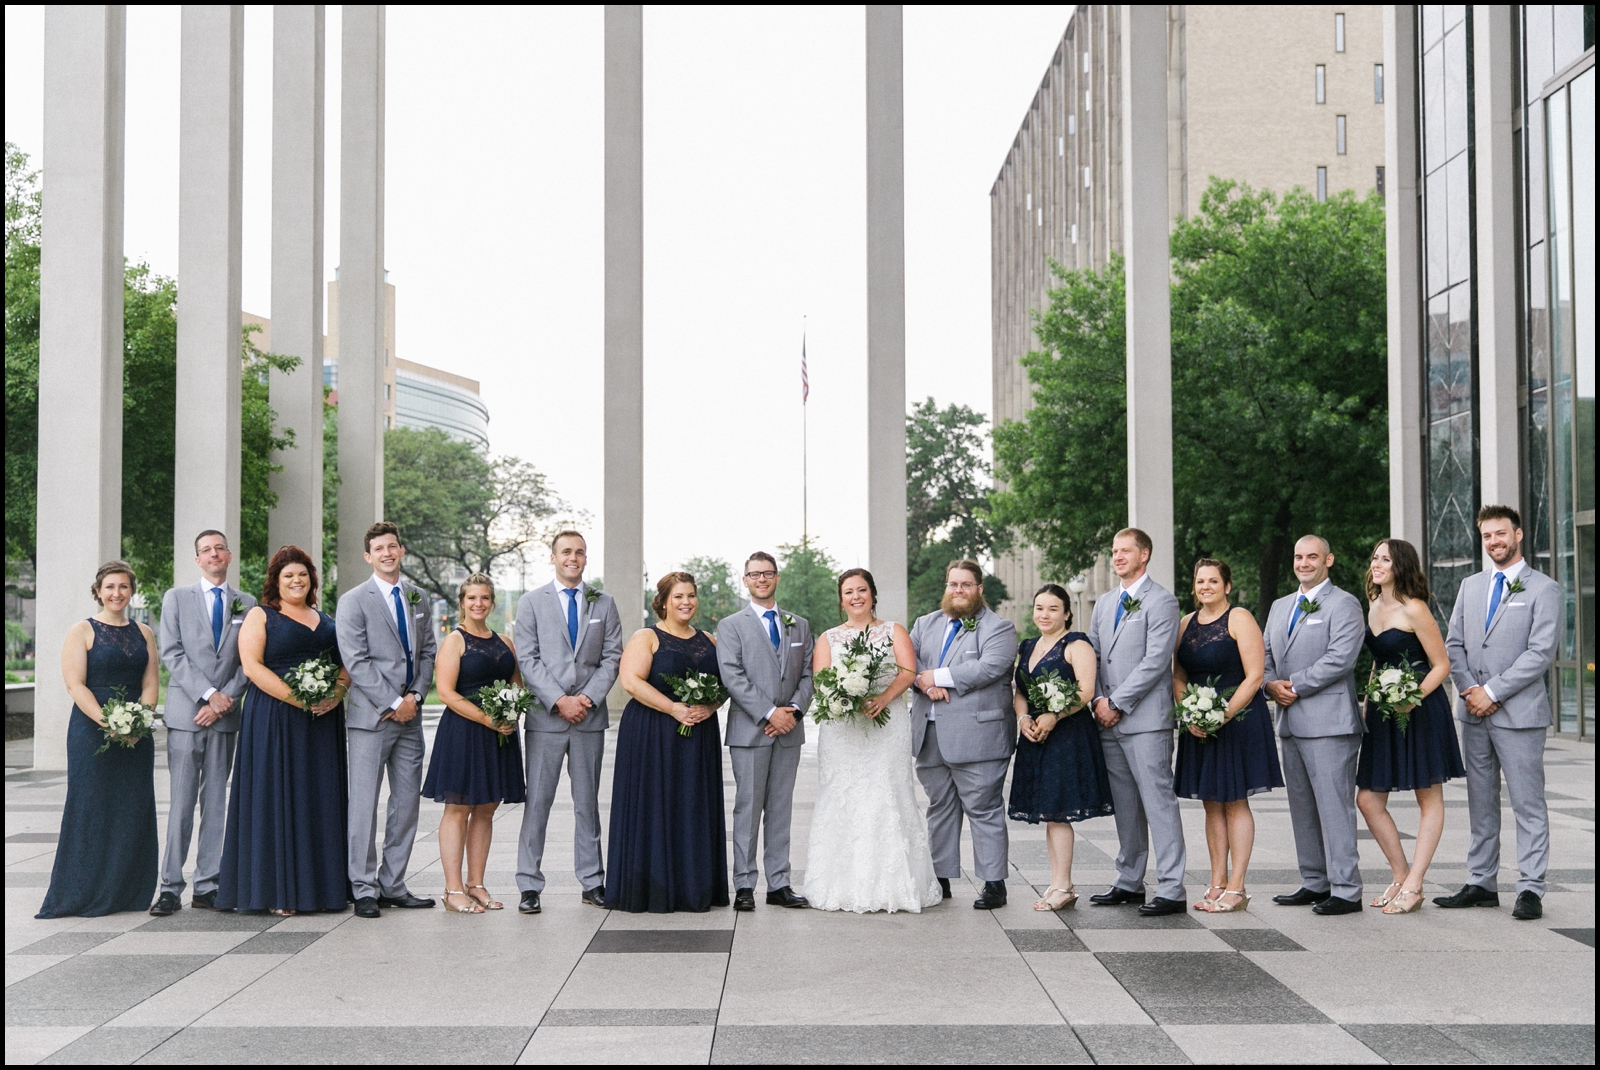 Bridal party before the wedding